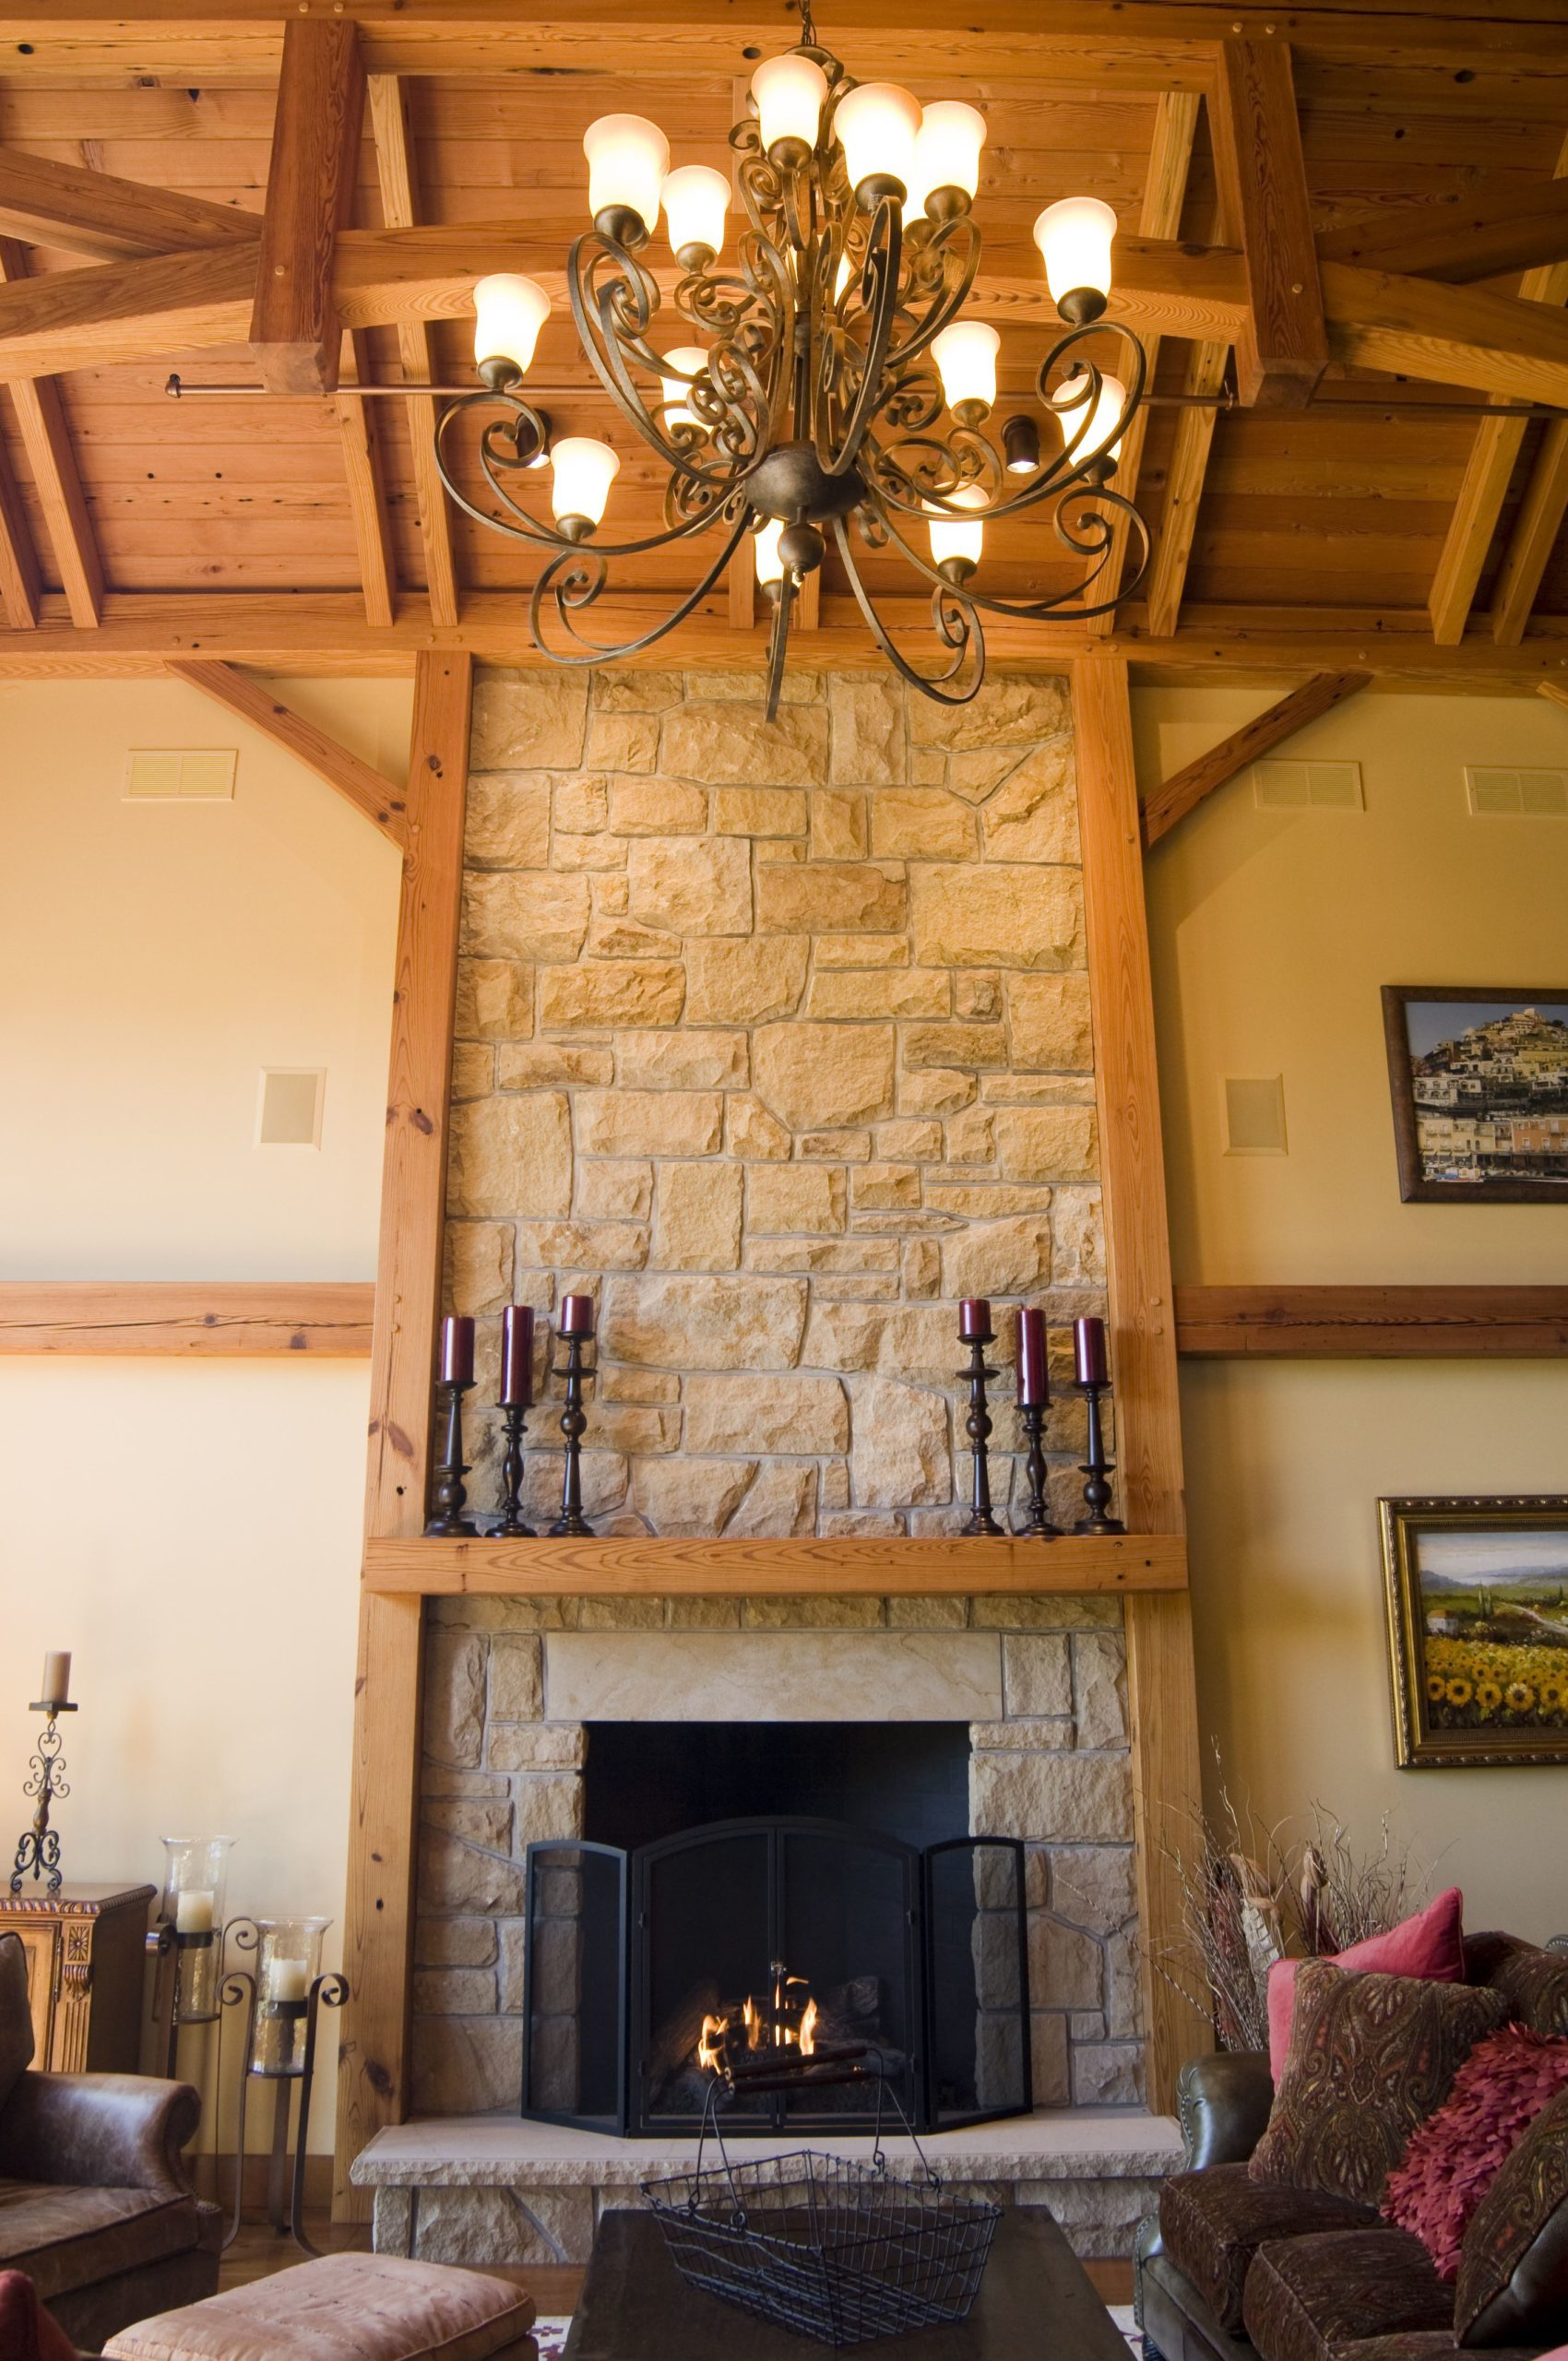 Main hall with fireplace at Silvermist